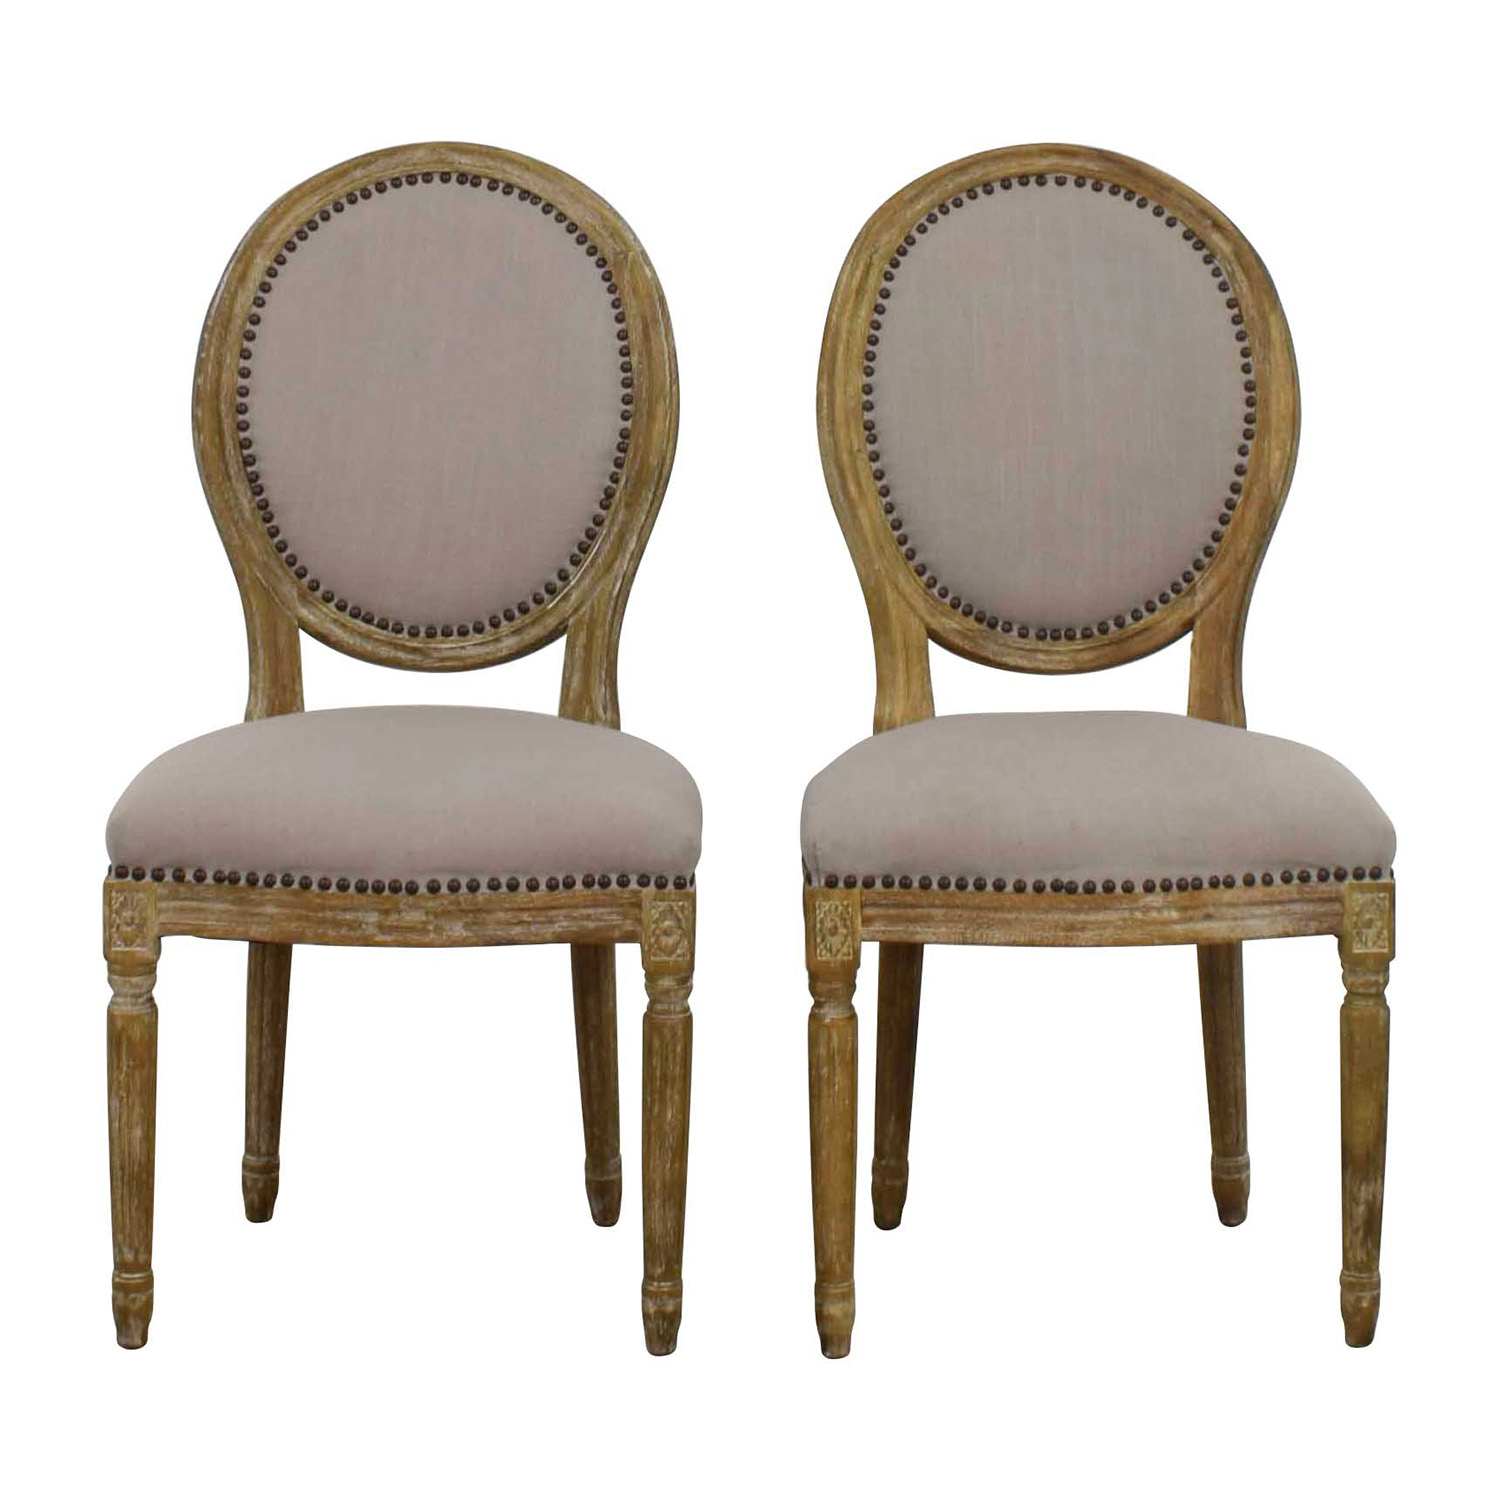 Superieur Baxton Studio Baxton Studio Clairette Traditional French Round Chair Chairs  ...